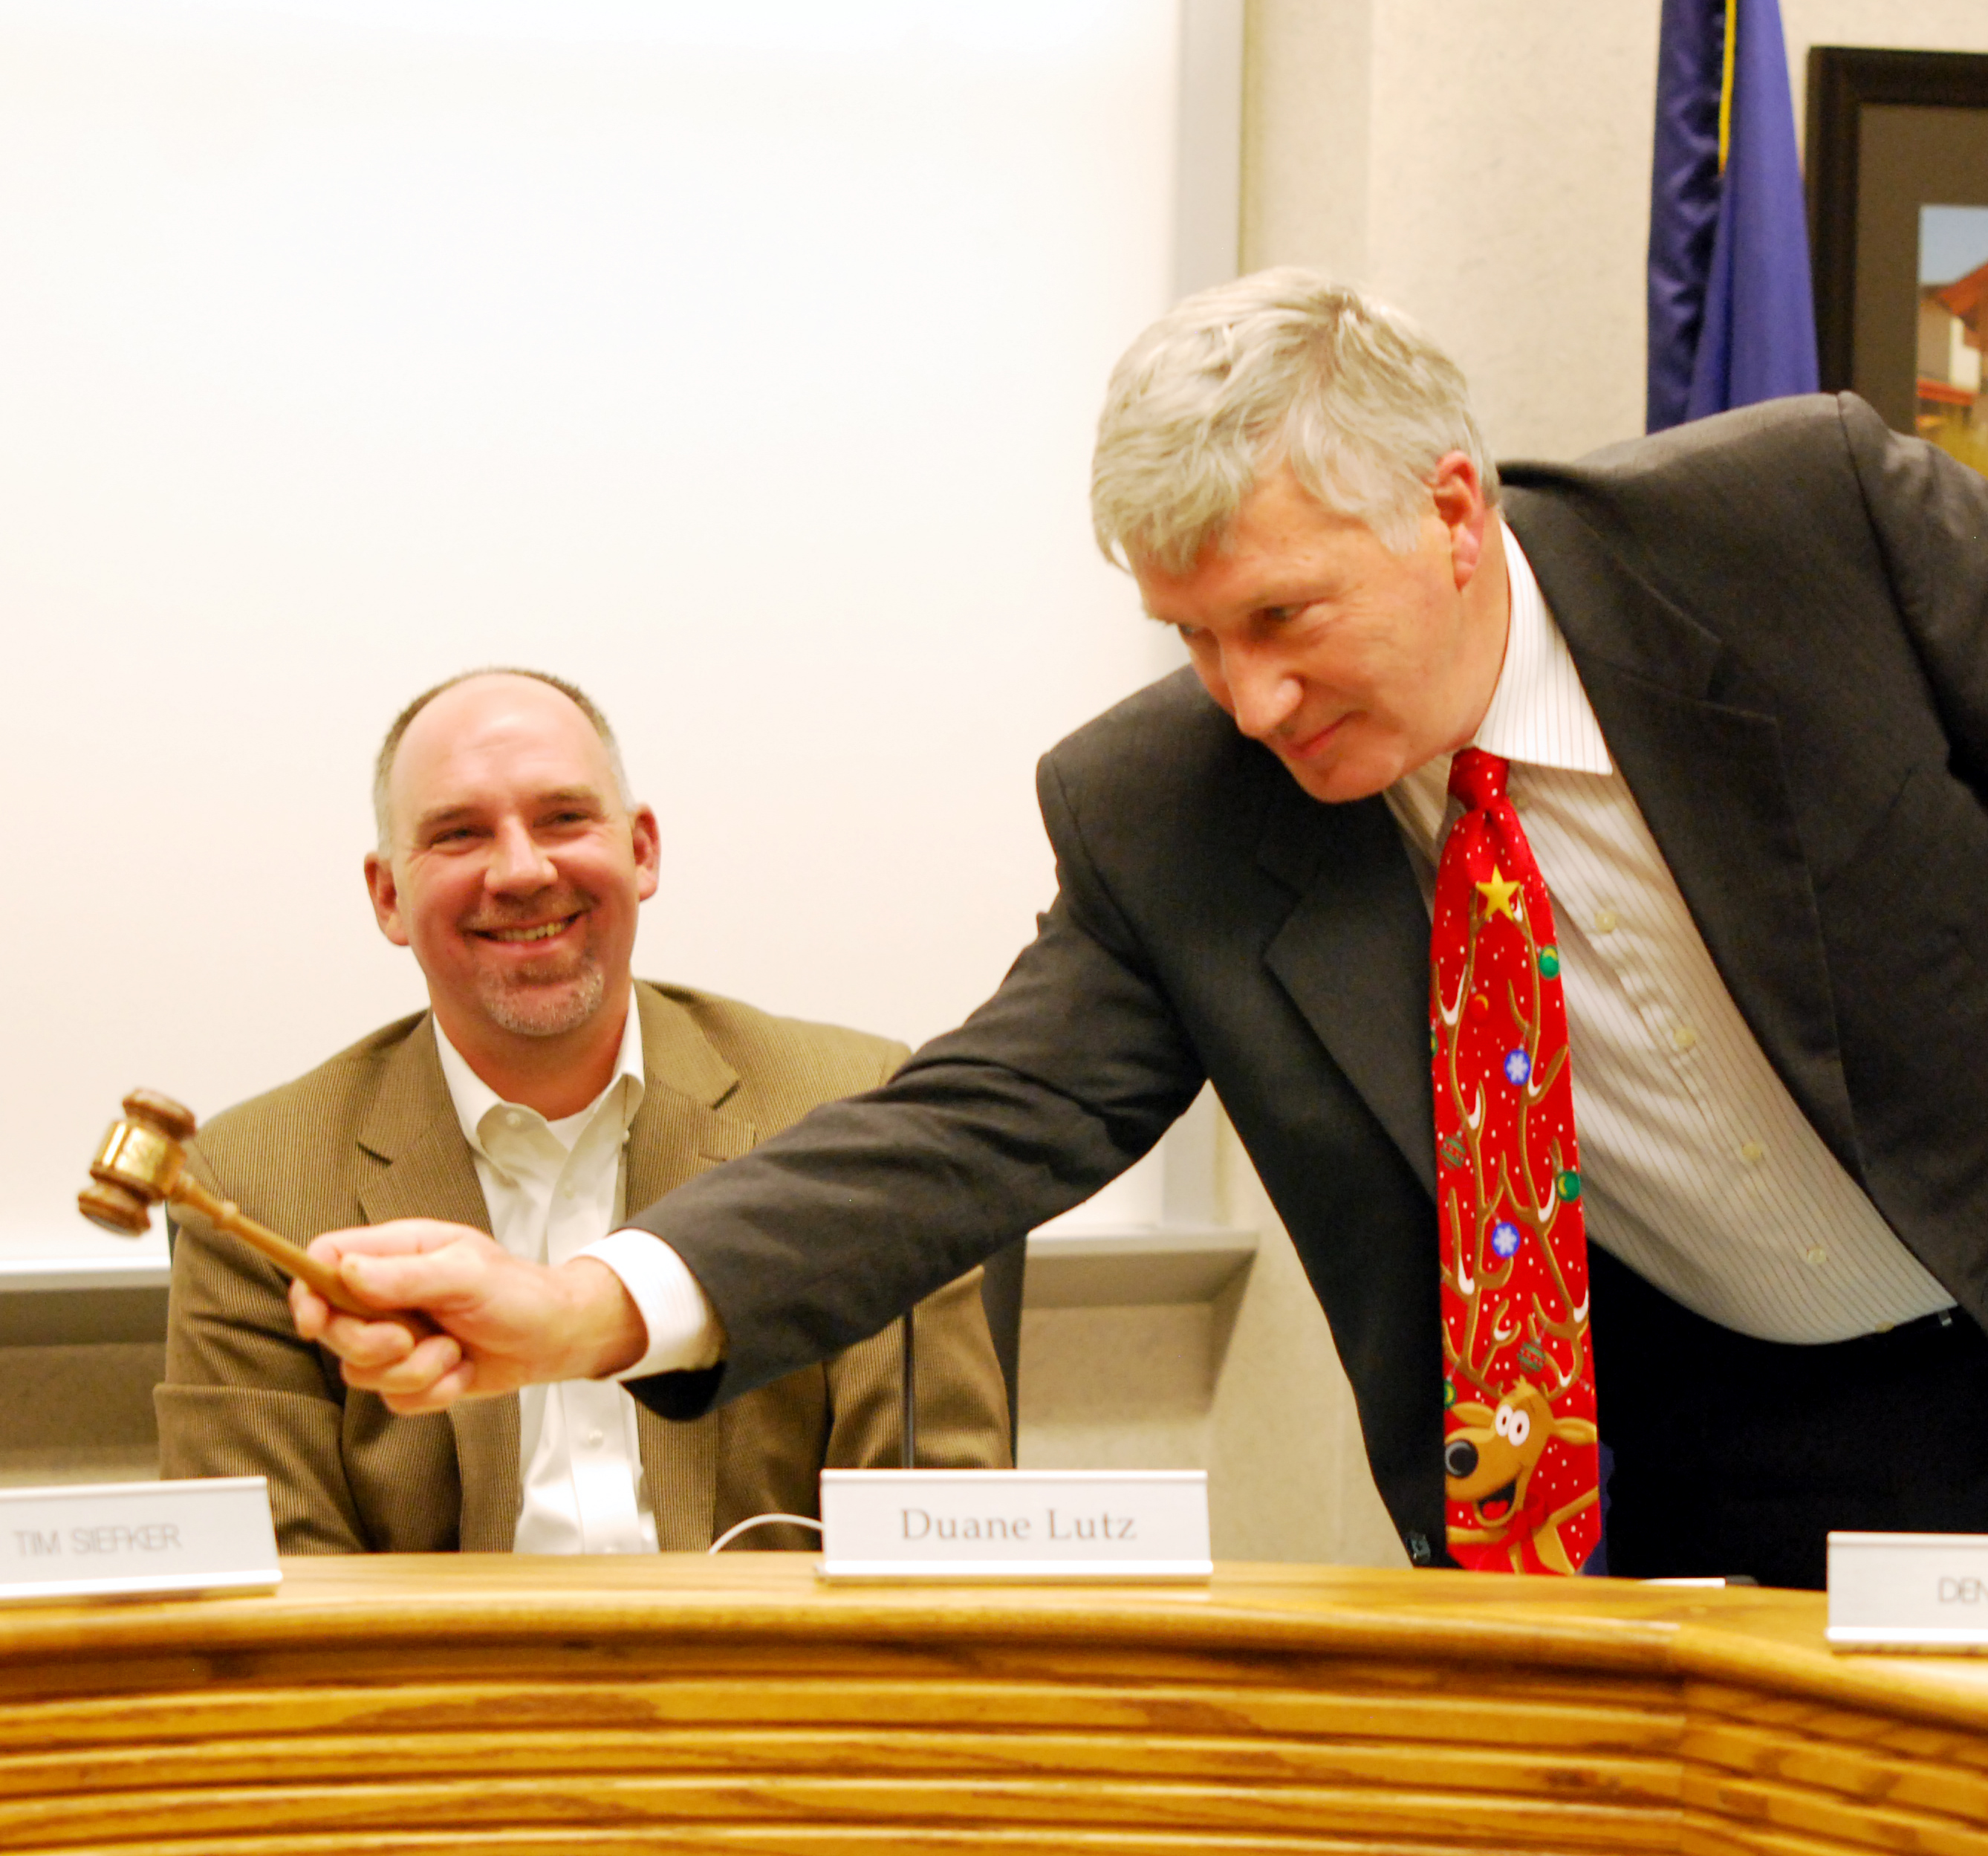 Dennis Ells bangs the gavel ending his last Westfield Washington School Board meeting after 21 and a half years of public service on Dec. 10. (Photo by Robert Herrington)